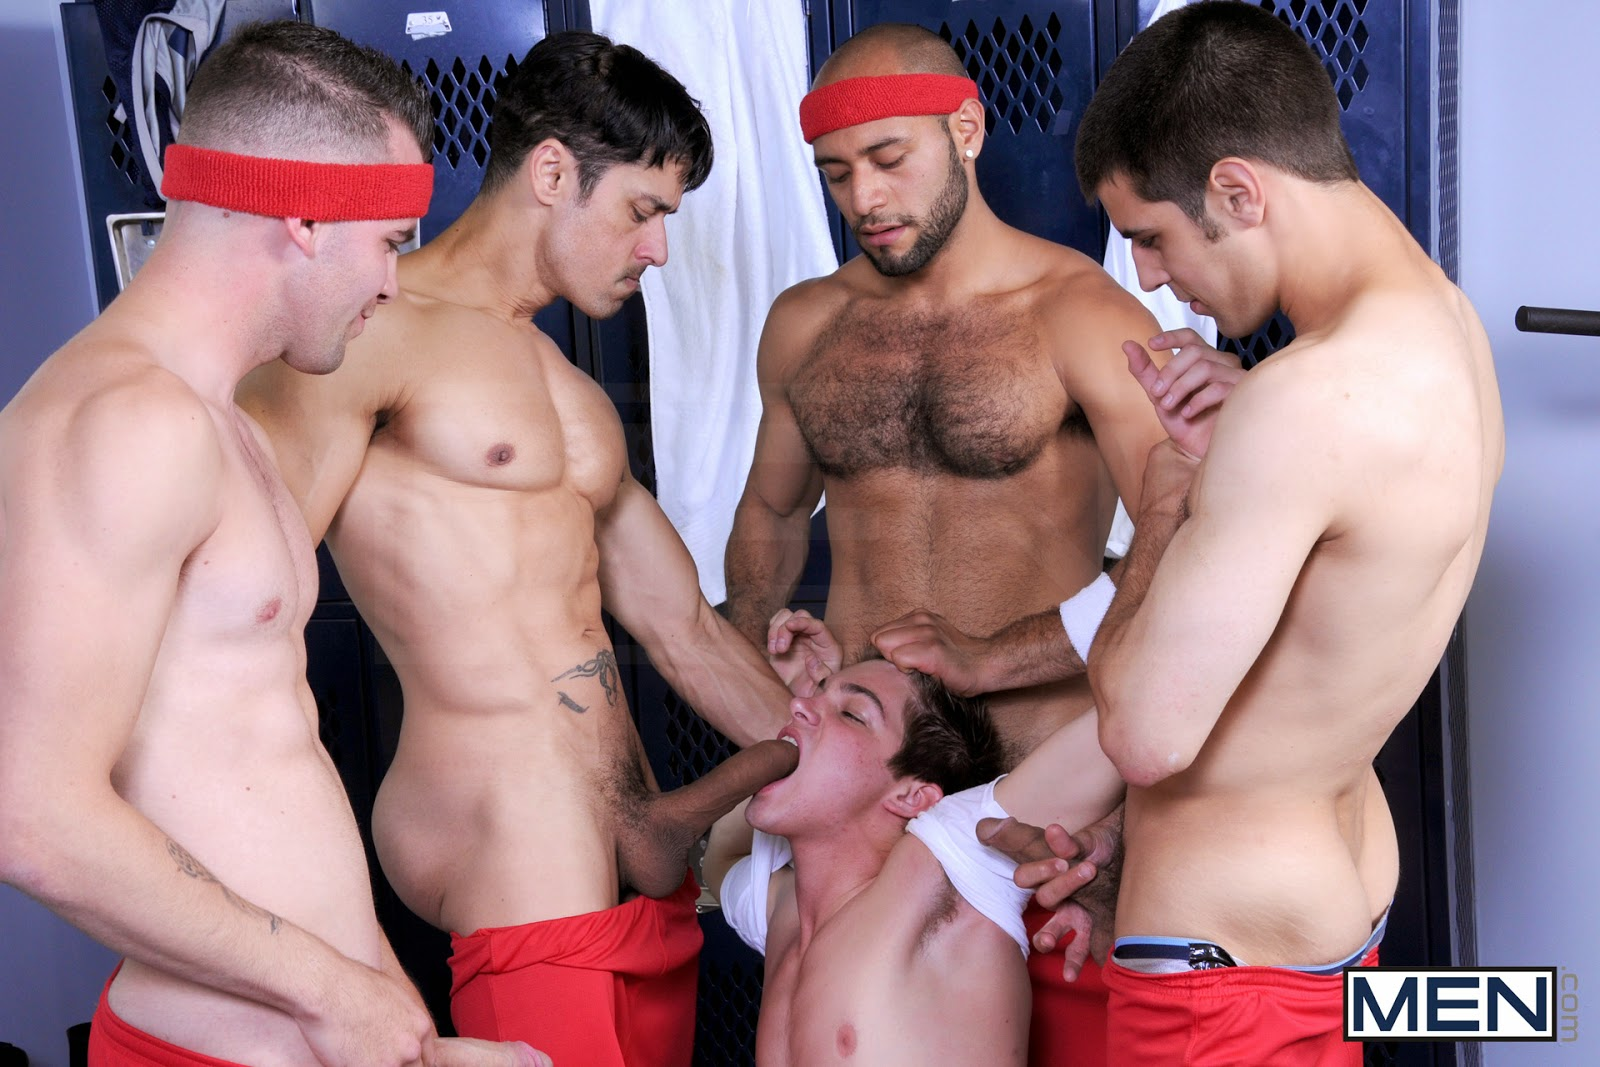 Winning ball blaze rafael johnny leo brad ltxvideos